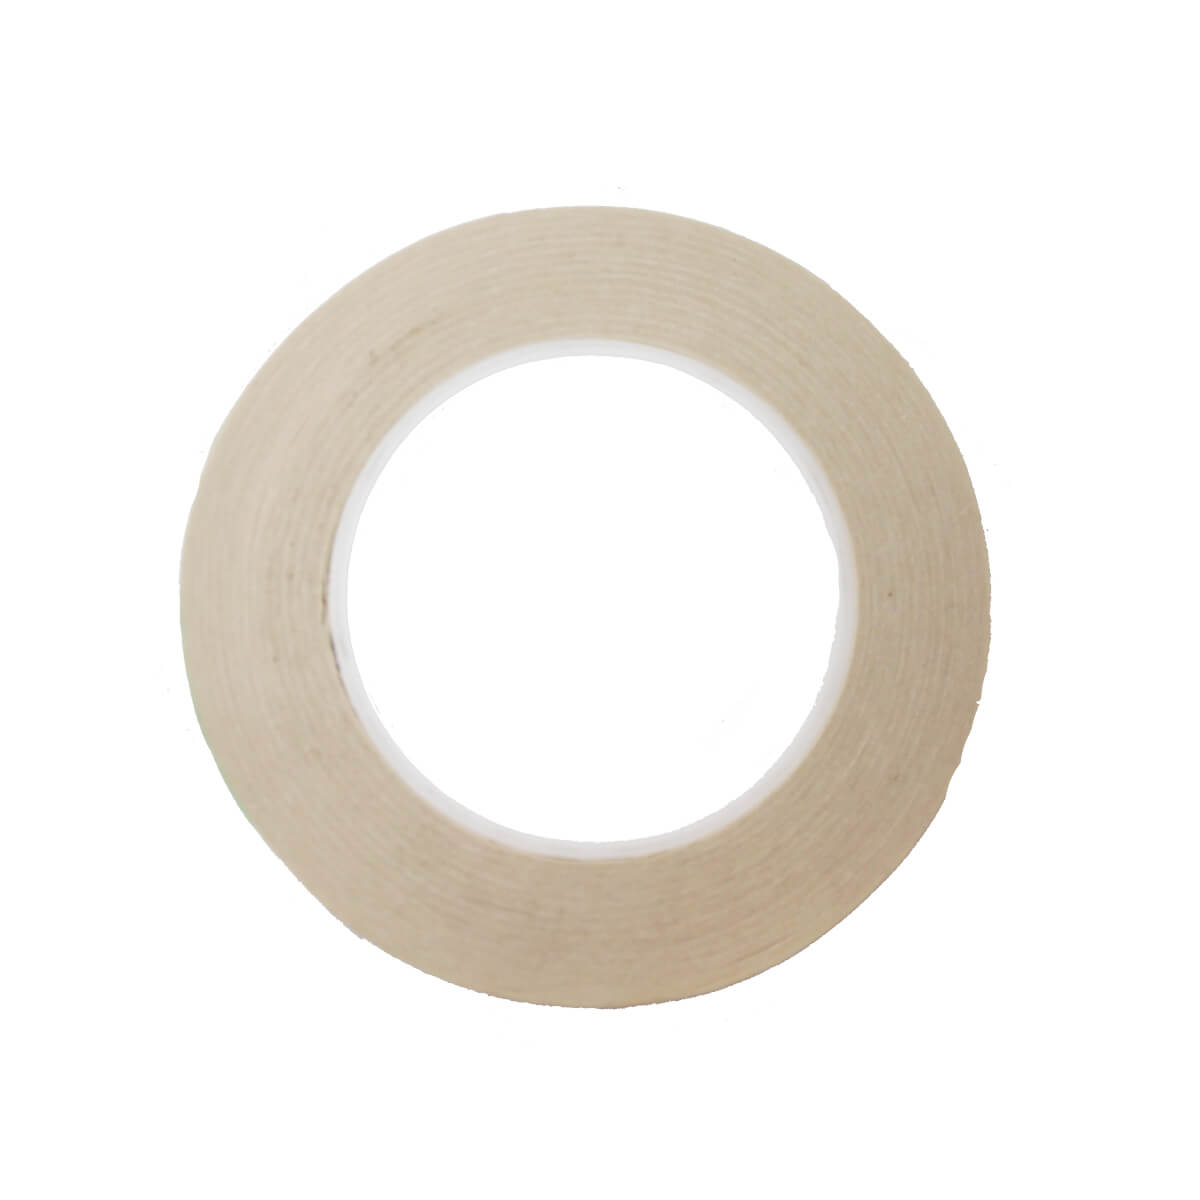 DOUBLE SIDED CRAFT TAPE 12 mm x 50 Mtrs